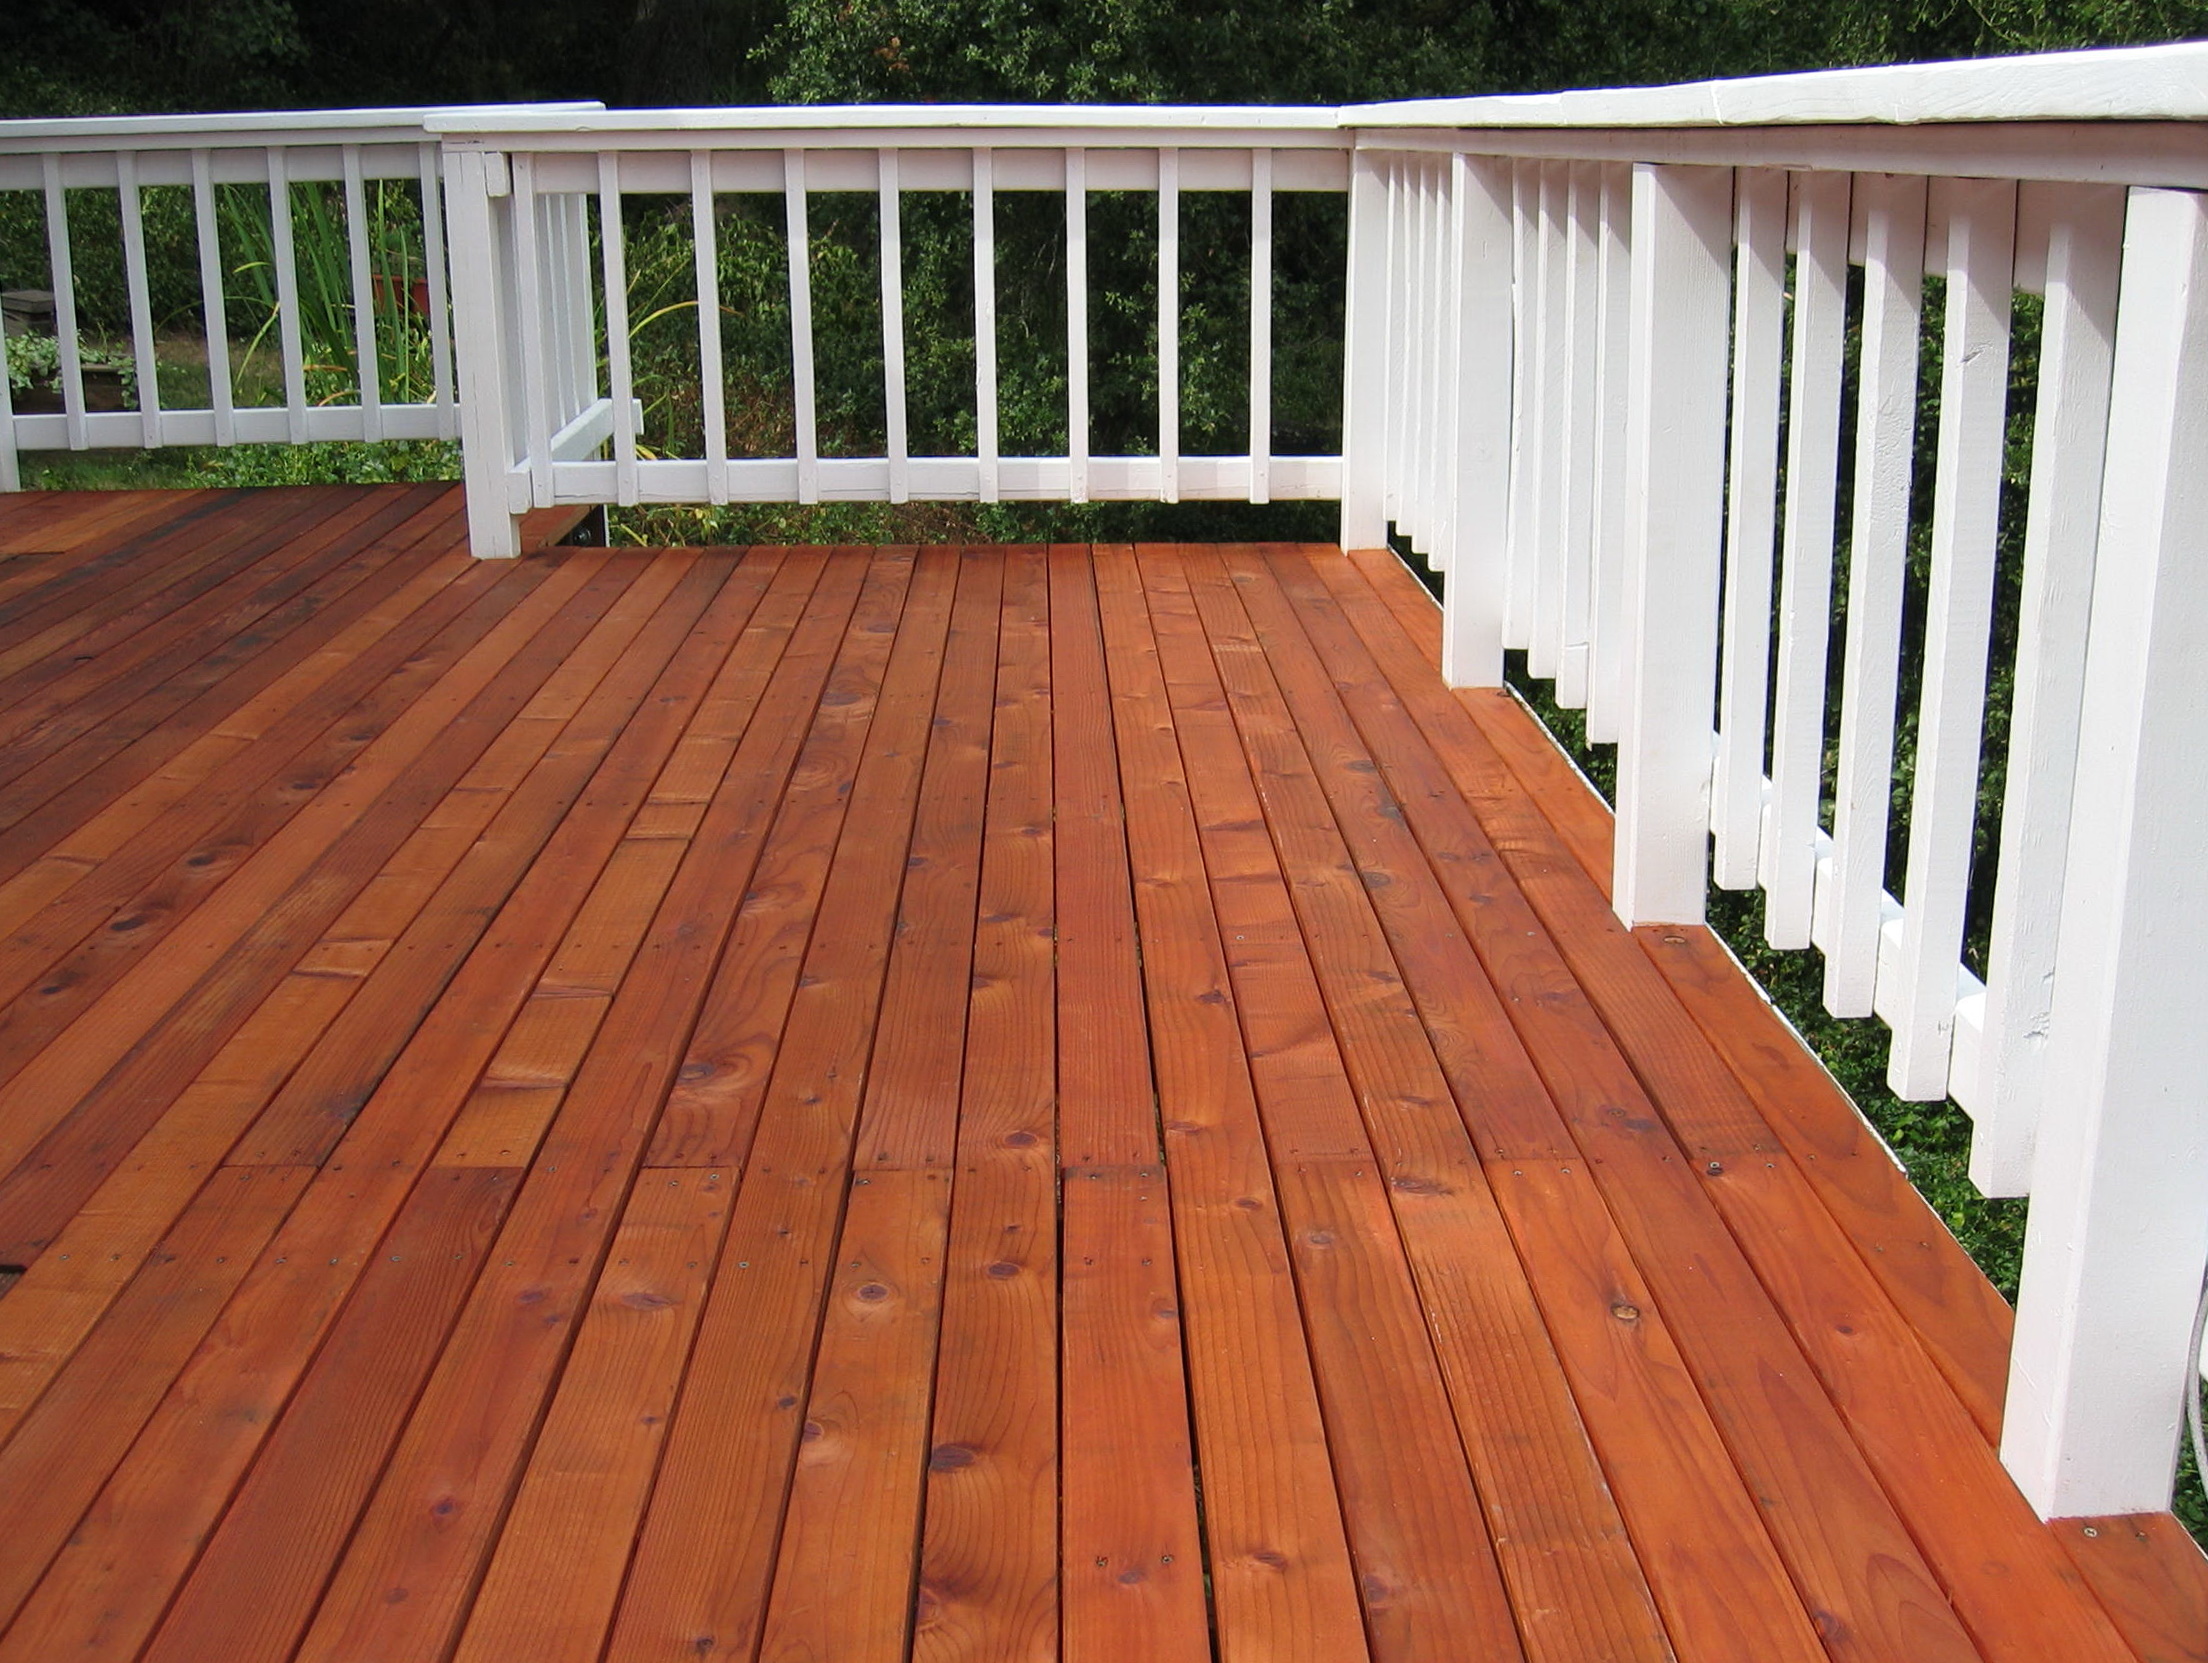 Deck Stain Colors For Pressure Treated Wood  Home Design